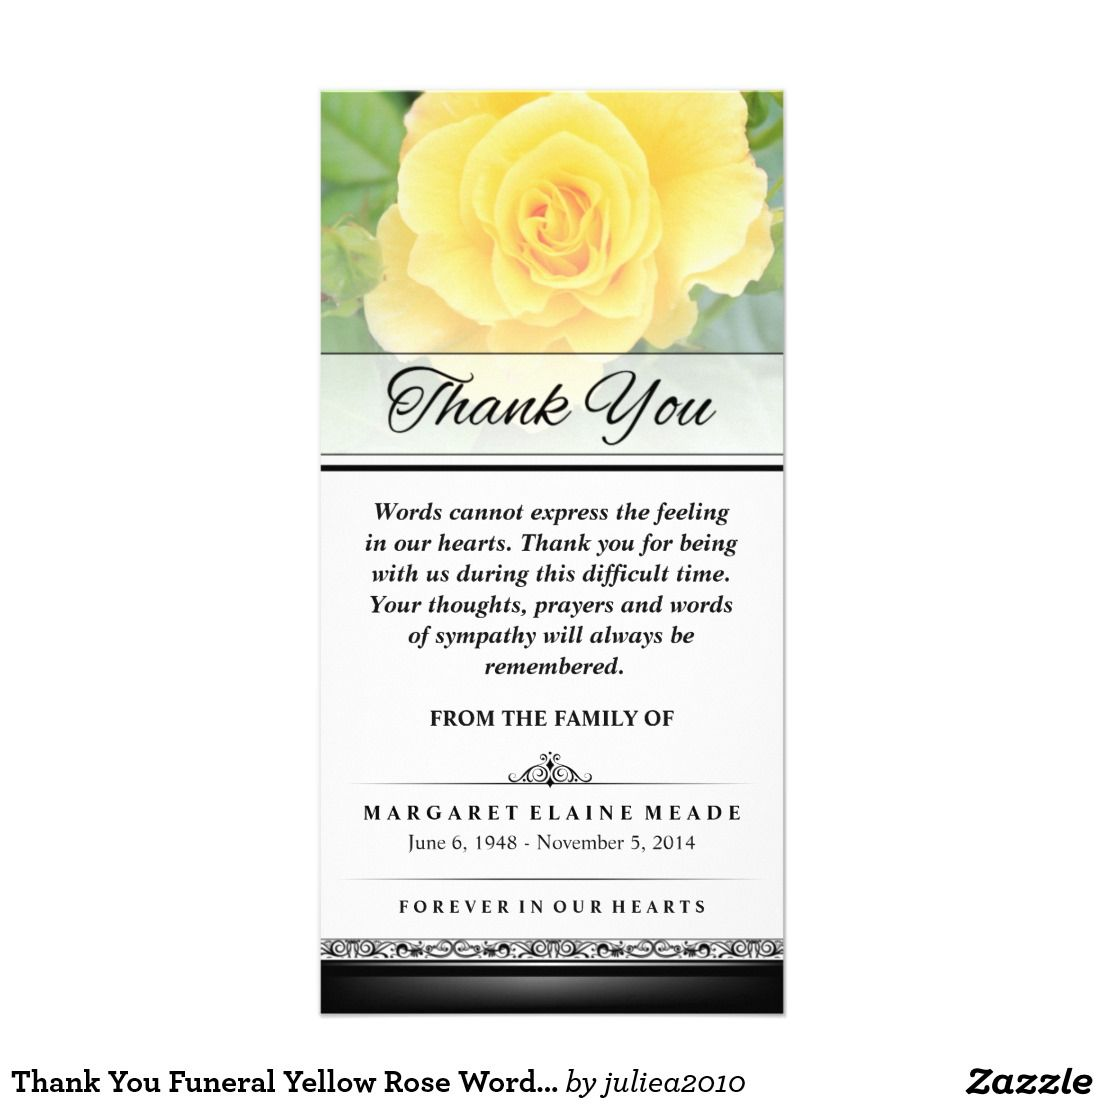 Thank you funeral yellow rose words cannot express l pinterest thank you funeral yellow rose words cannot express photo card izmirmasajfo